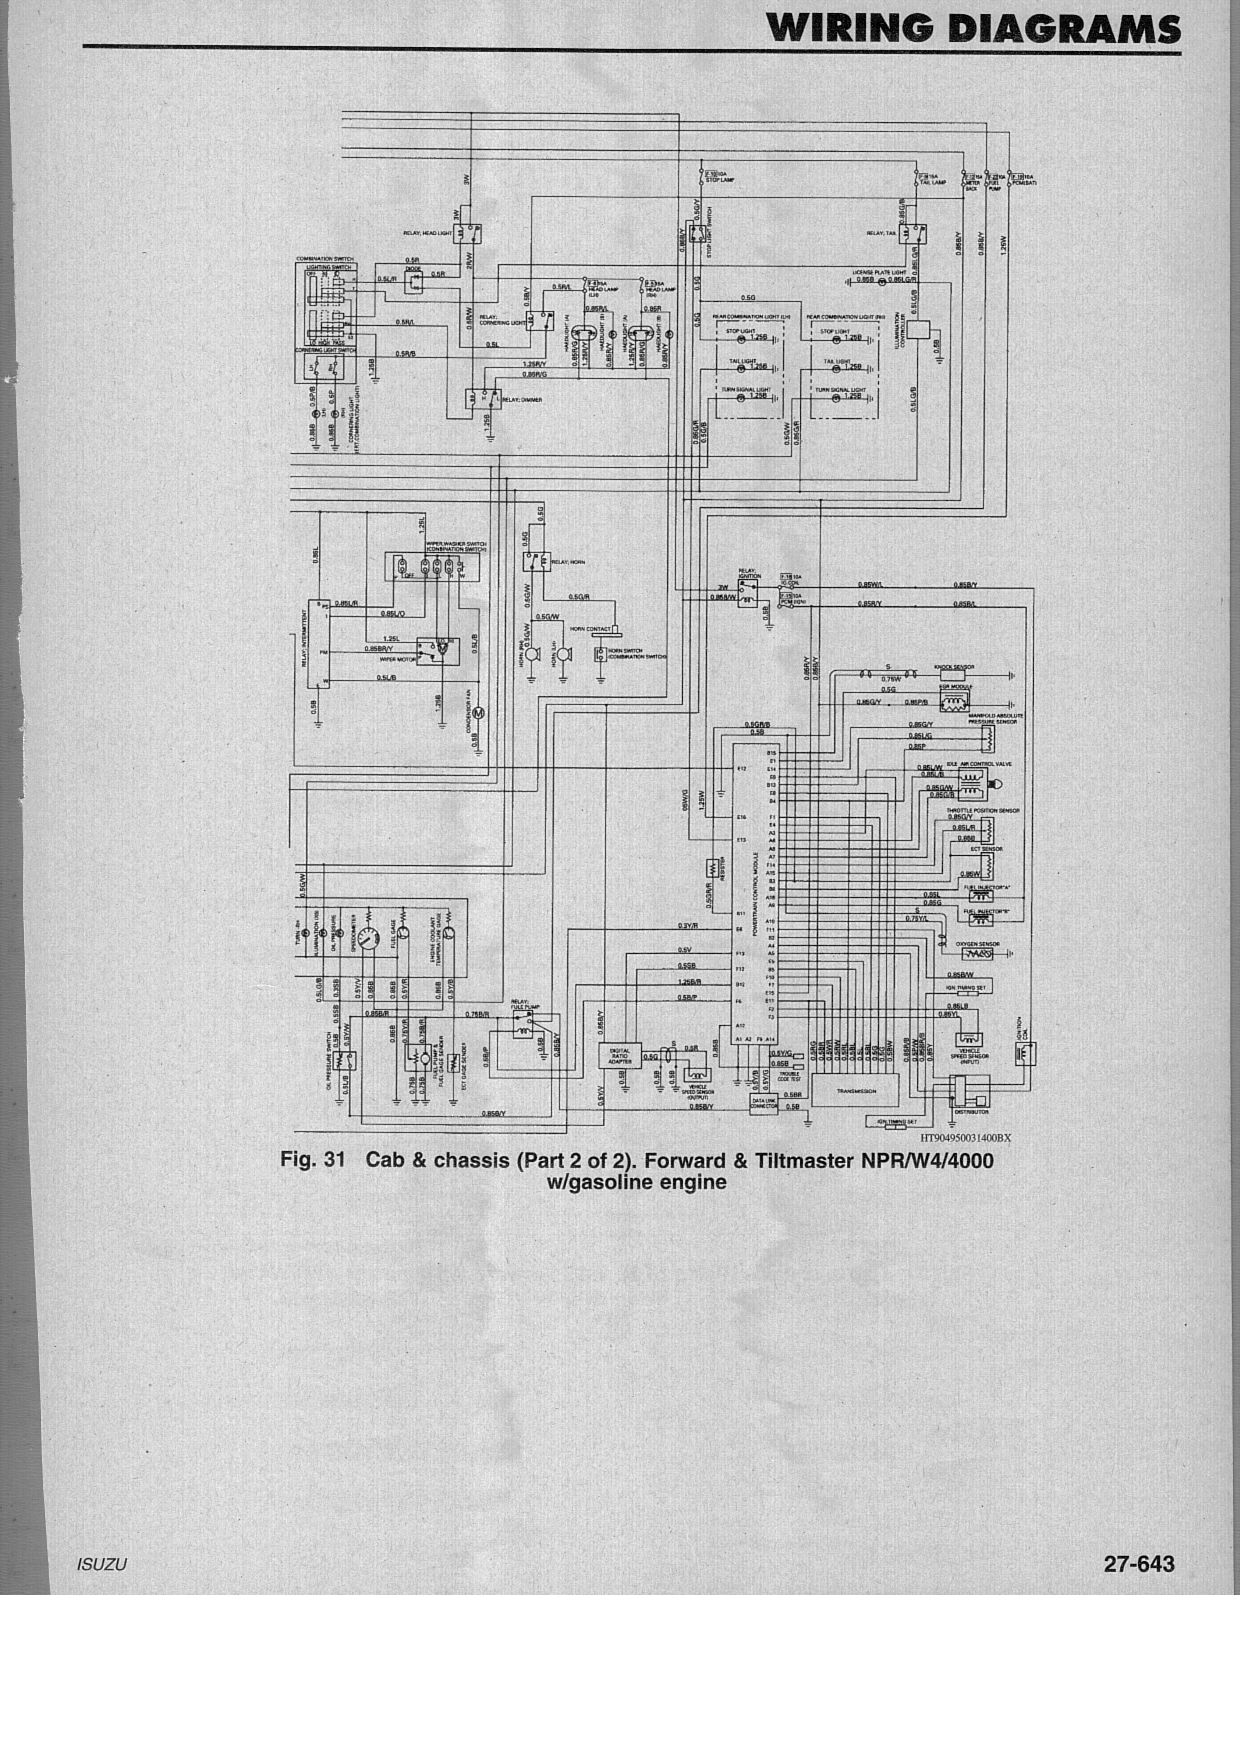 2009 06 21_140411_Isuzu_npr_gas_wiring_pg2 wiring diagrams gm isuzu 1995 1 2 w4 4000 npr (gasoline) 1995 isuzu npr wiring diagram at readyjetset.co